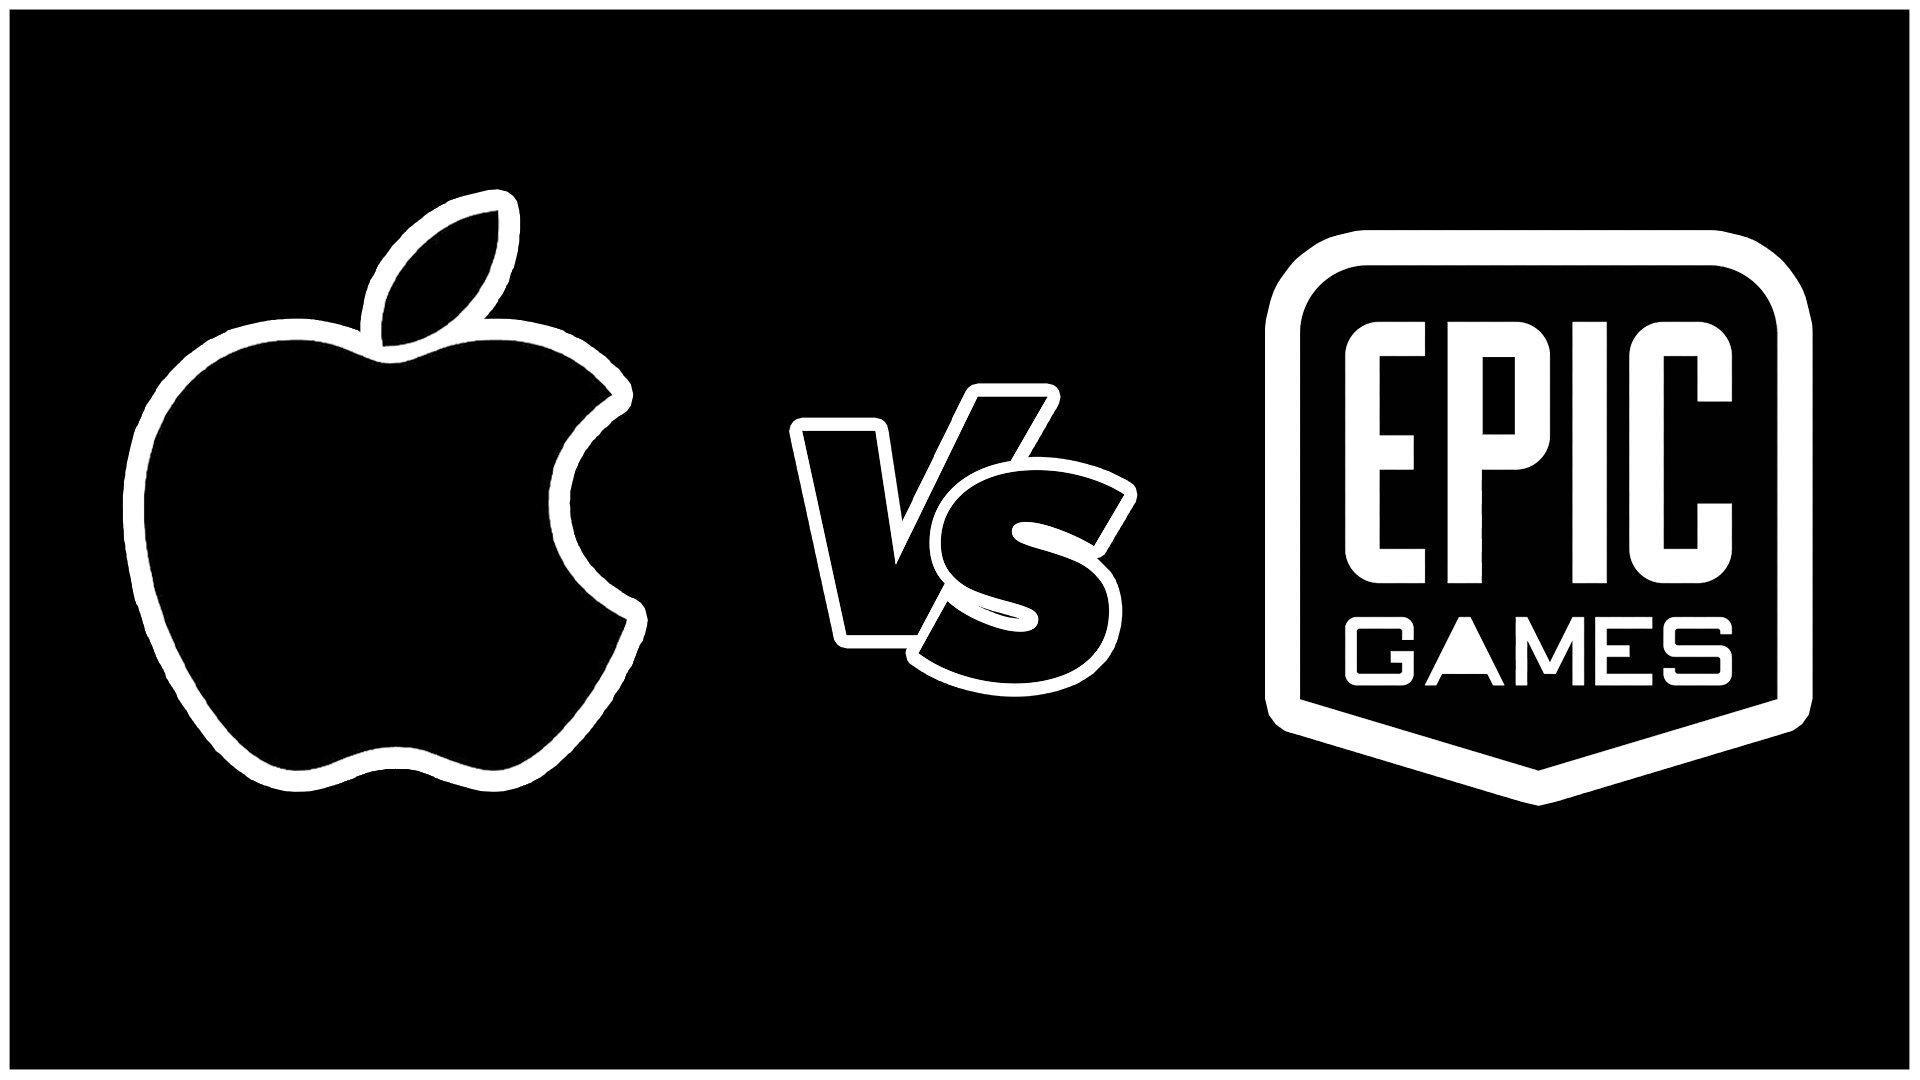 EpicVSApple - Epic Games et Apple bientôt forcés à s'affronter en procès